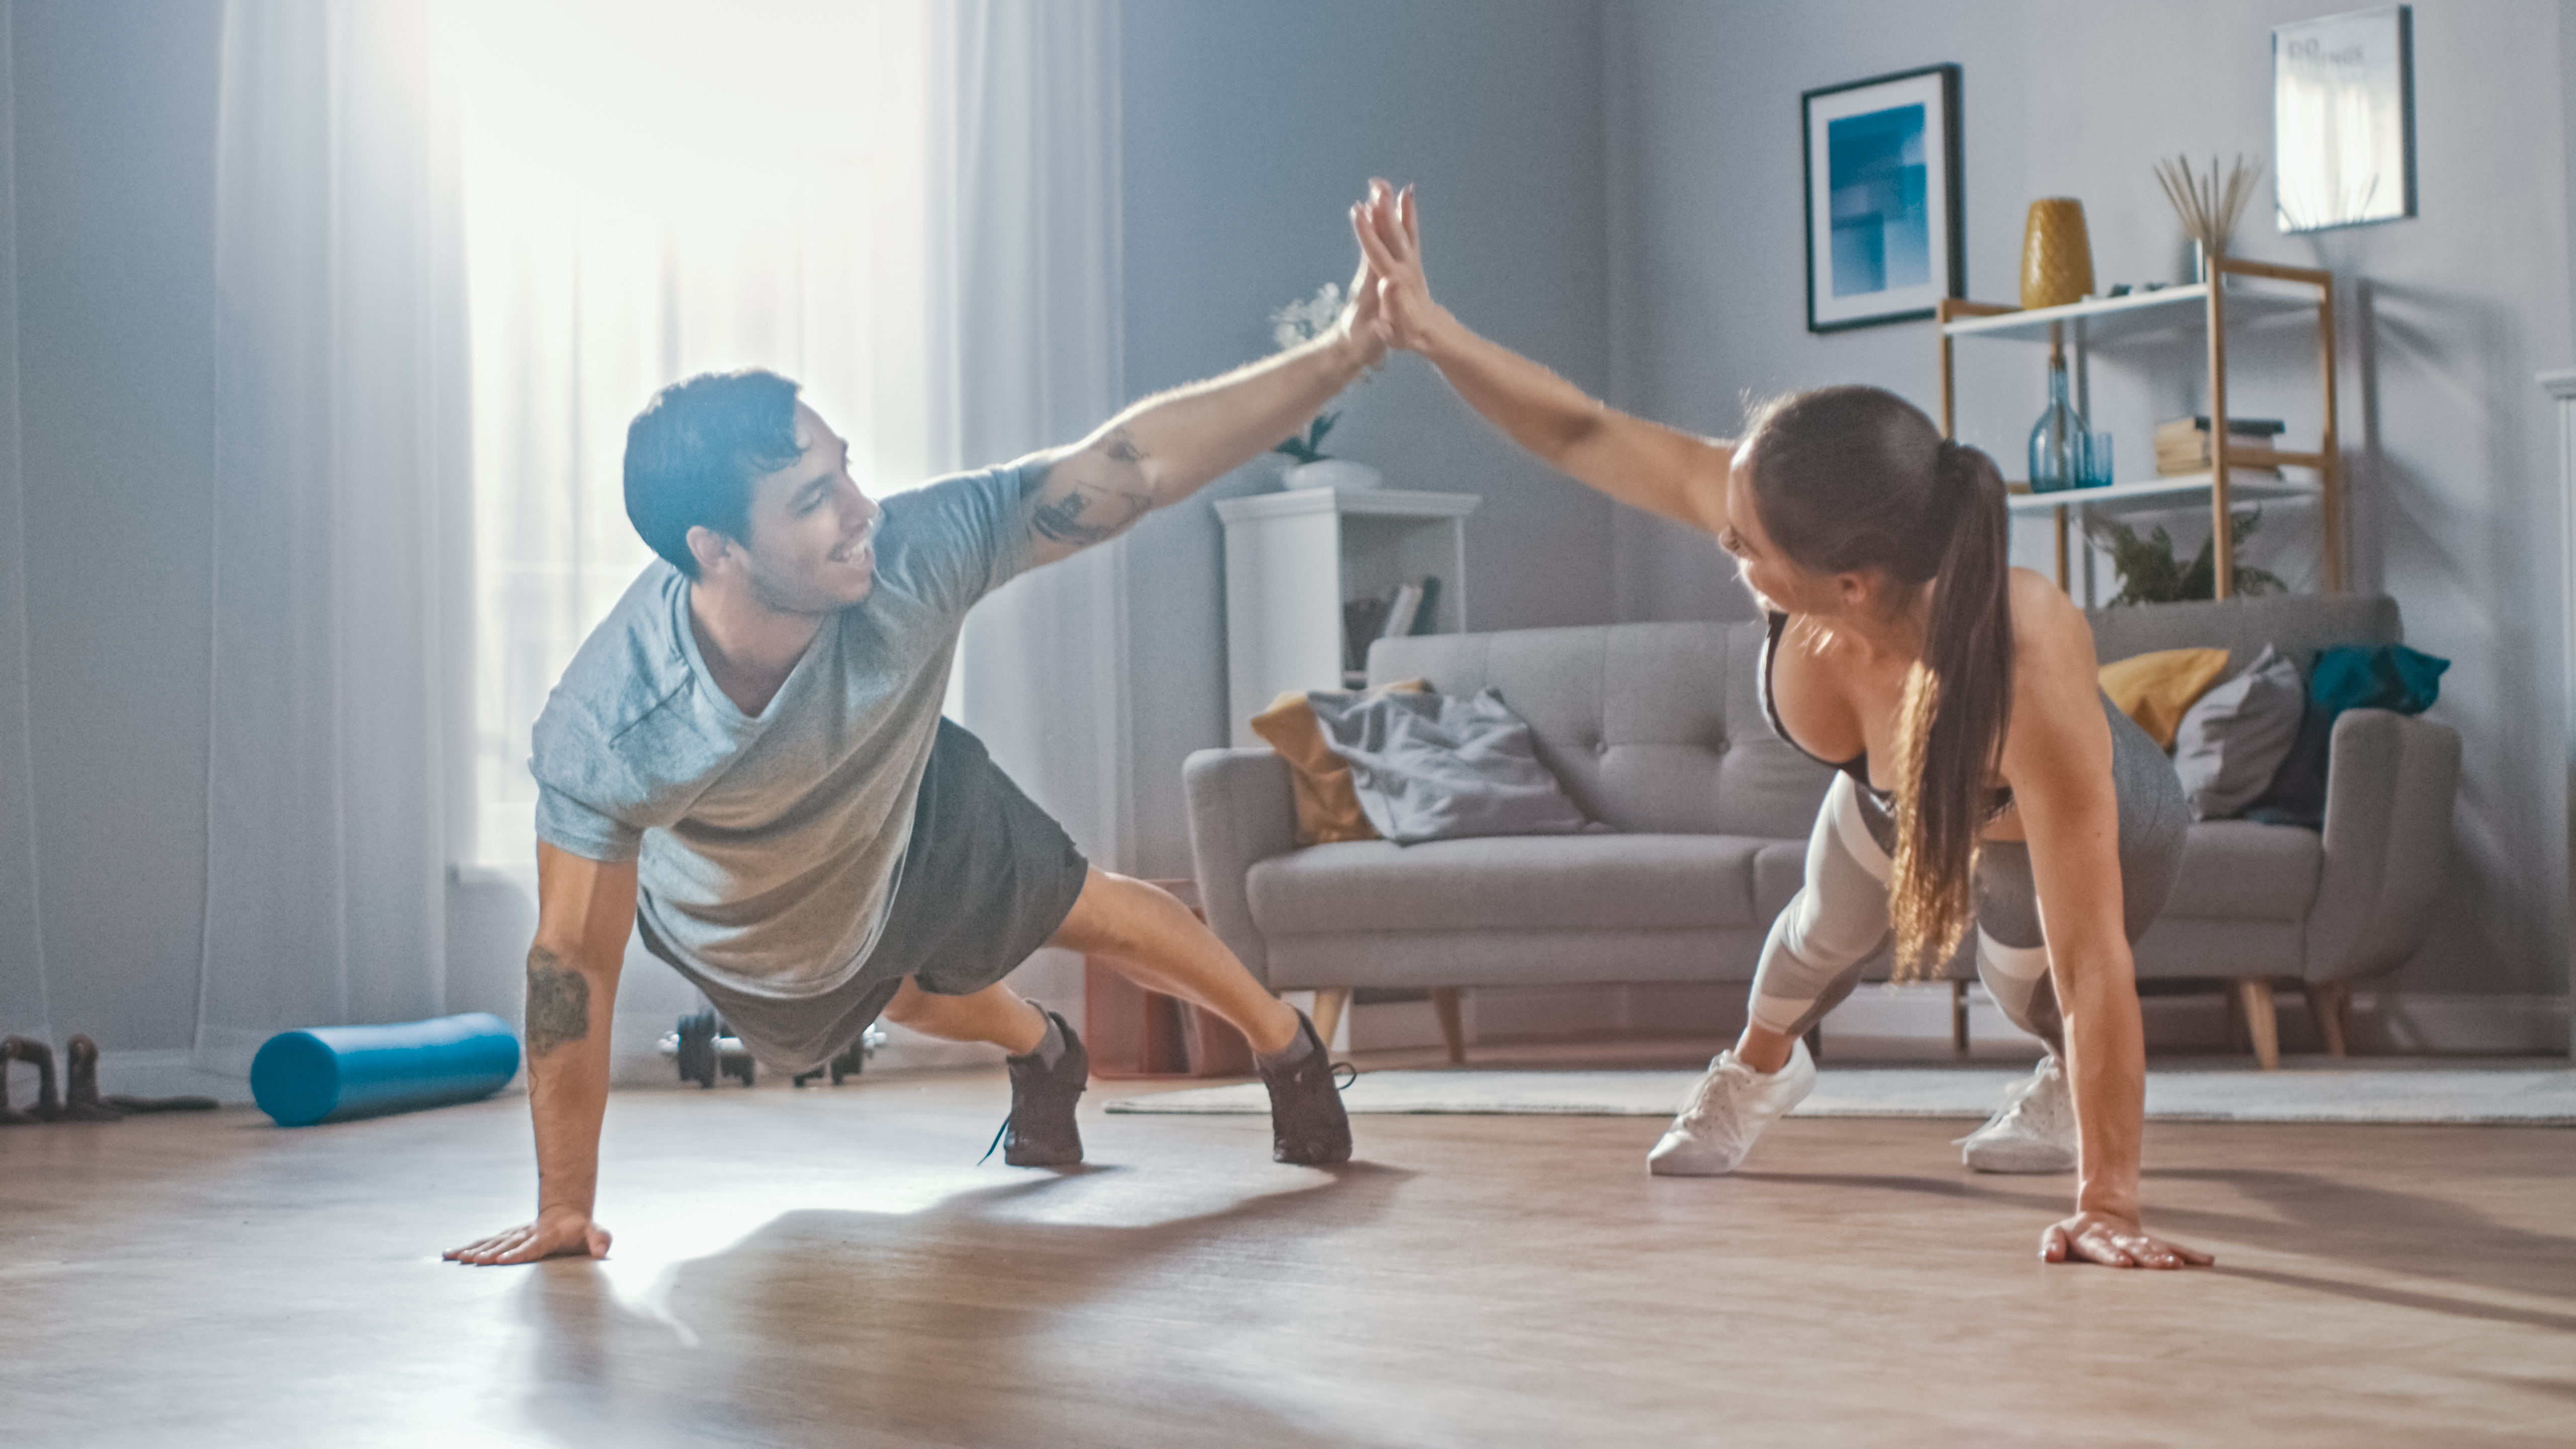 Strong,And,Beautiful,Athletic,Fitness,Couple,In,Workout,Clothes,Doing